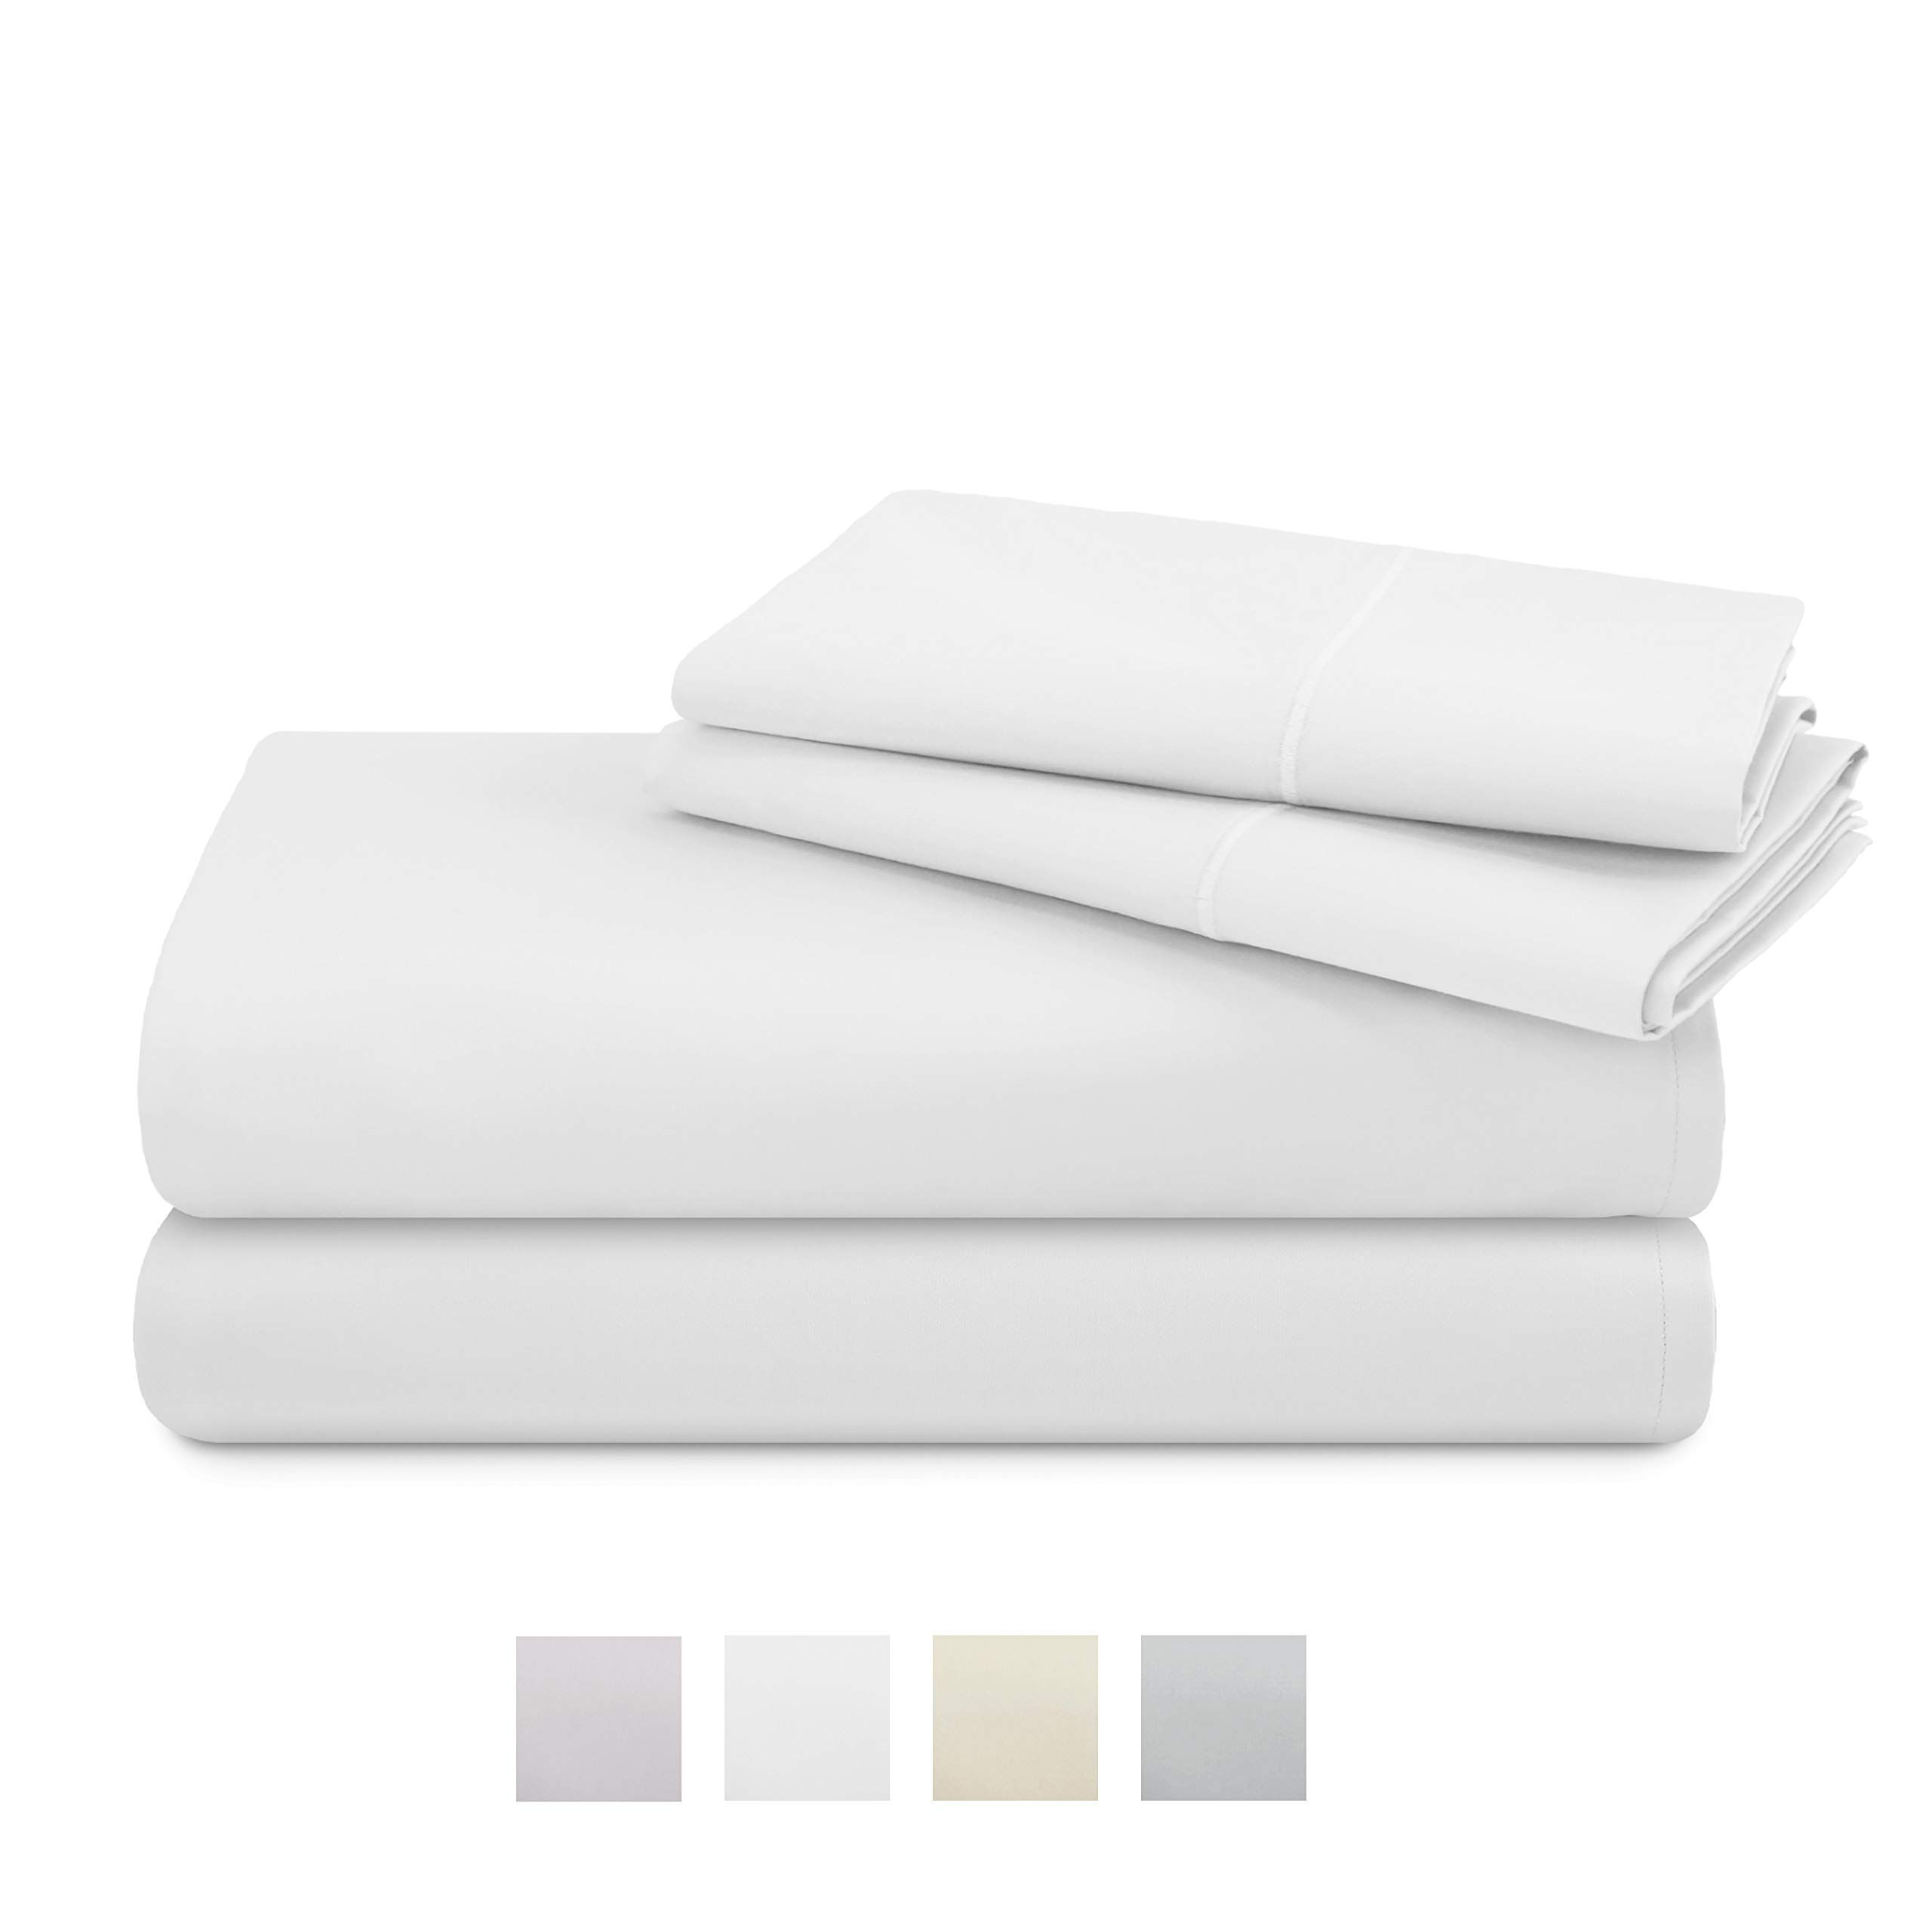 TRIDENT 600 Thread Count King Sheets, 100% Cotton, Sateen Weave, deep Pockets fit Upto 18'', Wrinkle Resistant, 4 Piece Sheet Set, Techno-fit, Luxury Hotel Collection (Bright White, King) by TRIDENT